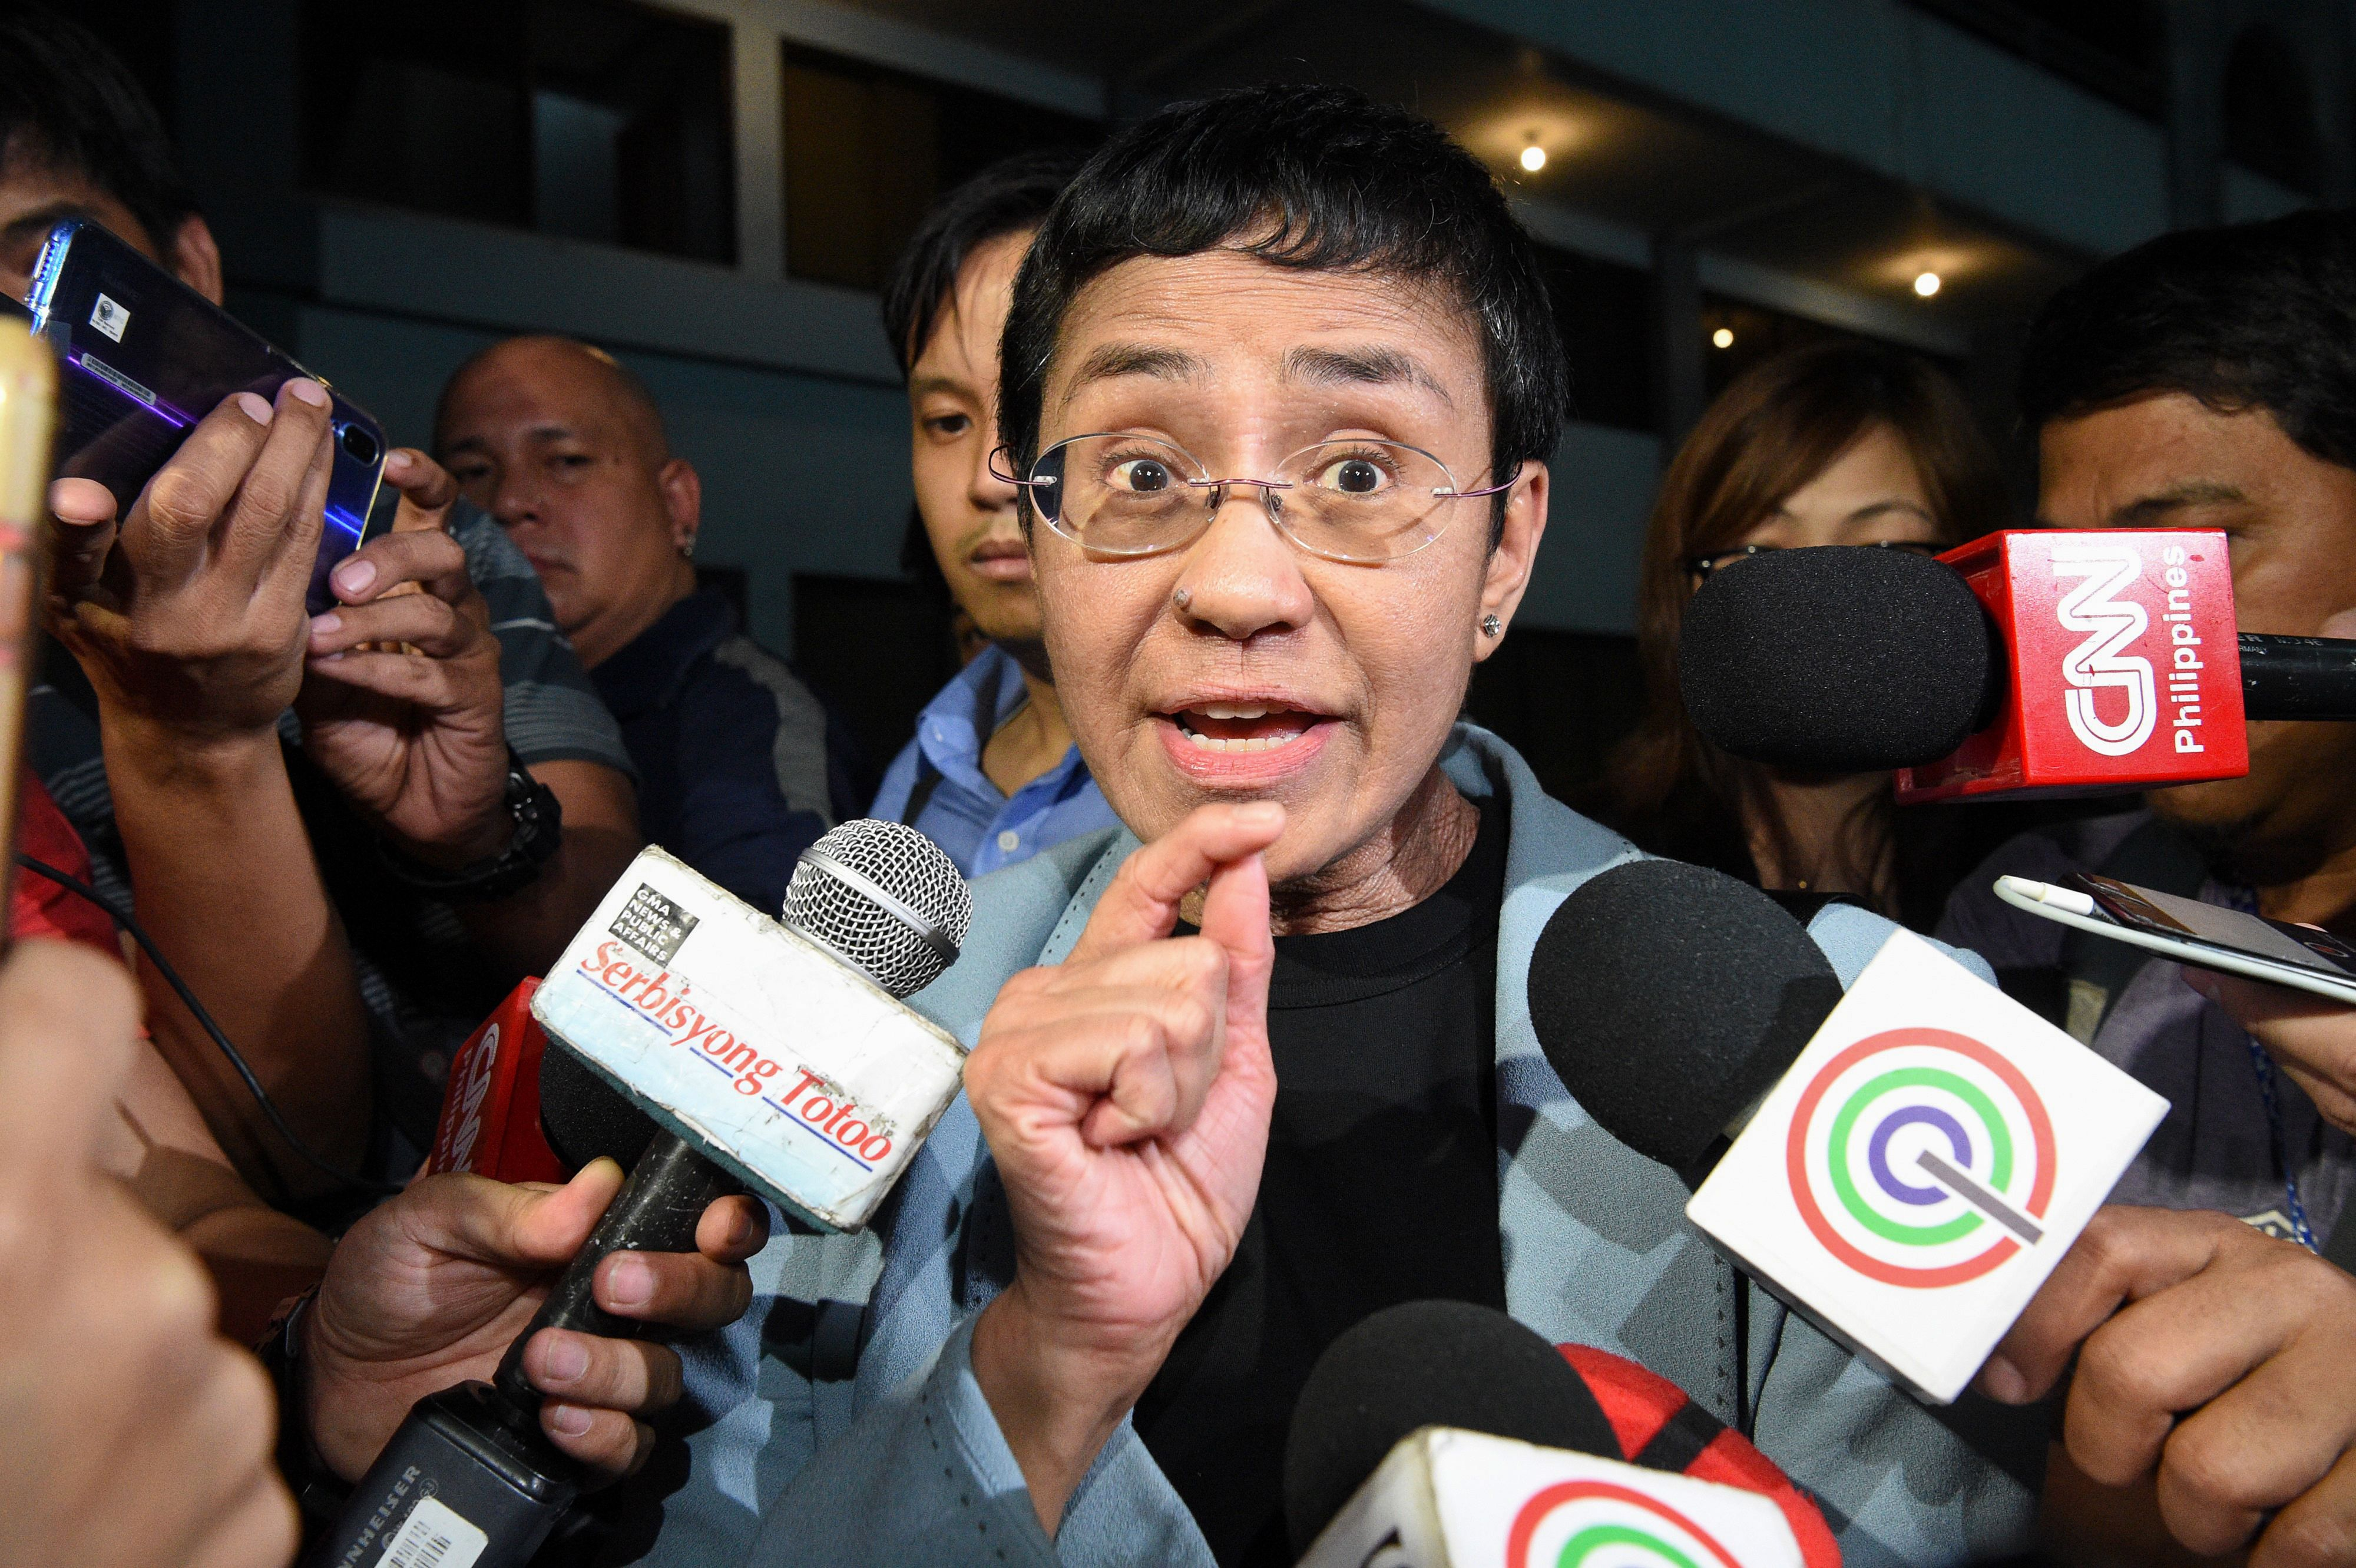 Journalist Maria Ressa speaks to the media as she arrives at the National Bureau of Investigation headquarters after her arrest in Manila on Feb. 13, 2019.